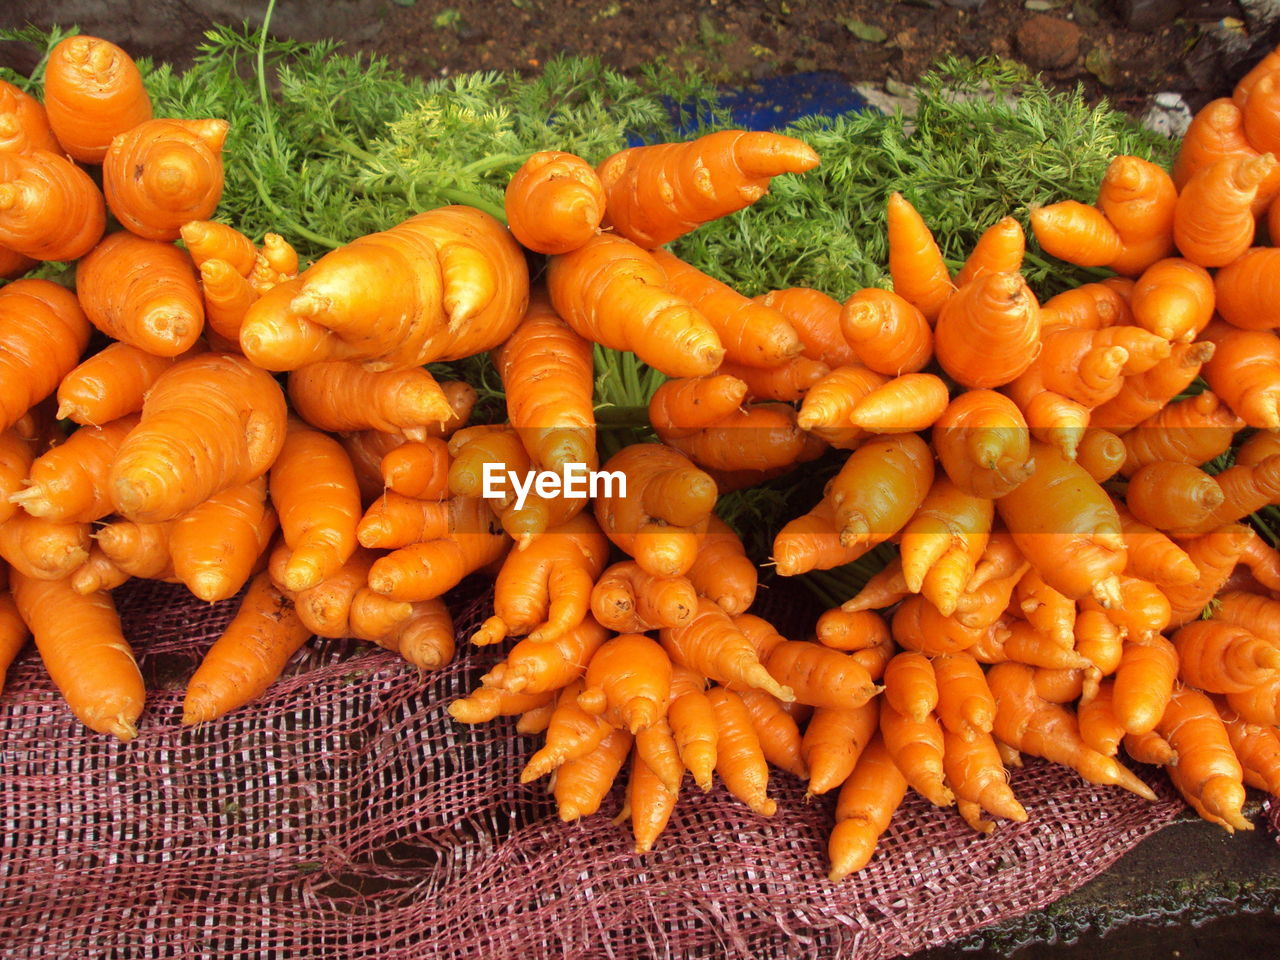 High Angle View Of Carrots For Sale In Market